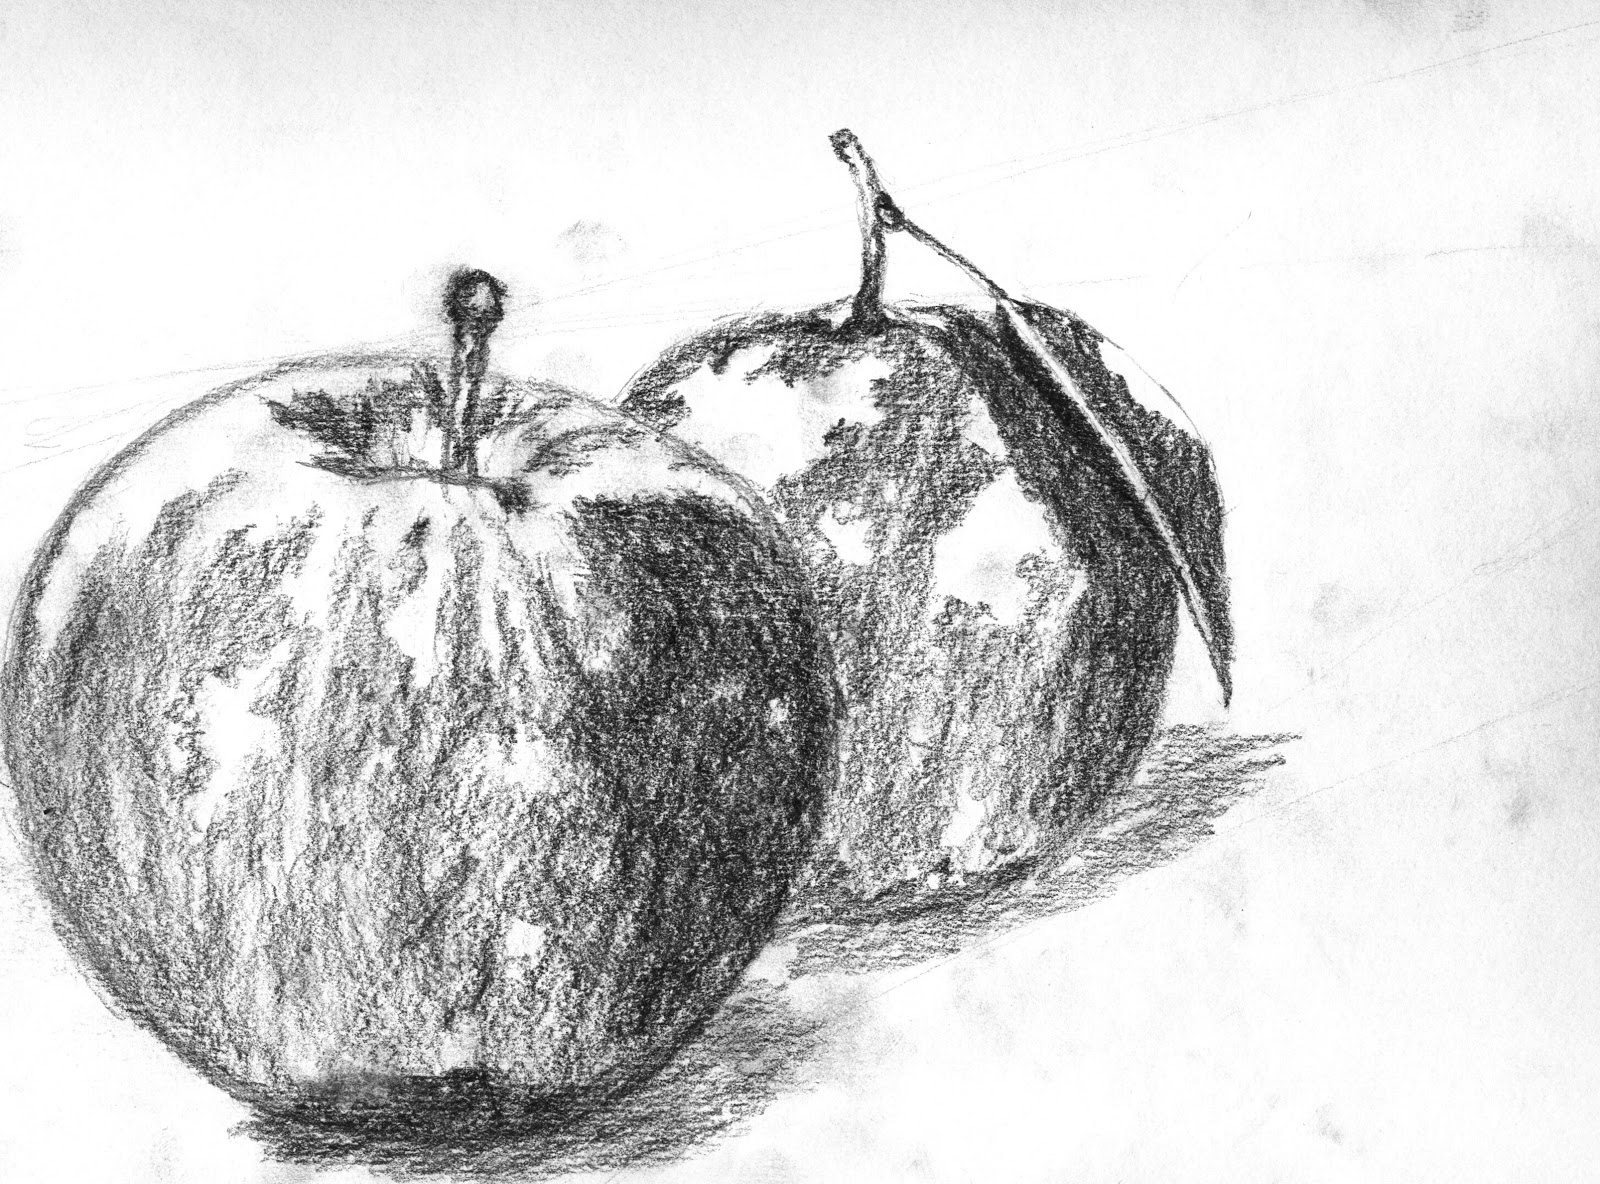 Line Drawing Natural Forms : Observational drawing still life natural forms